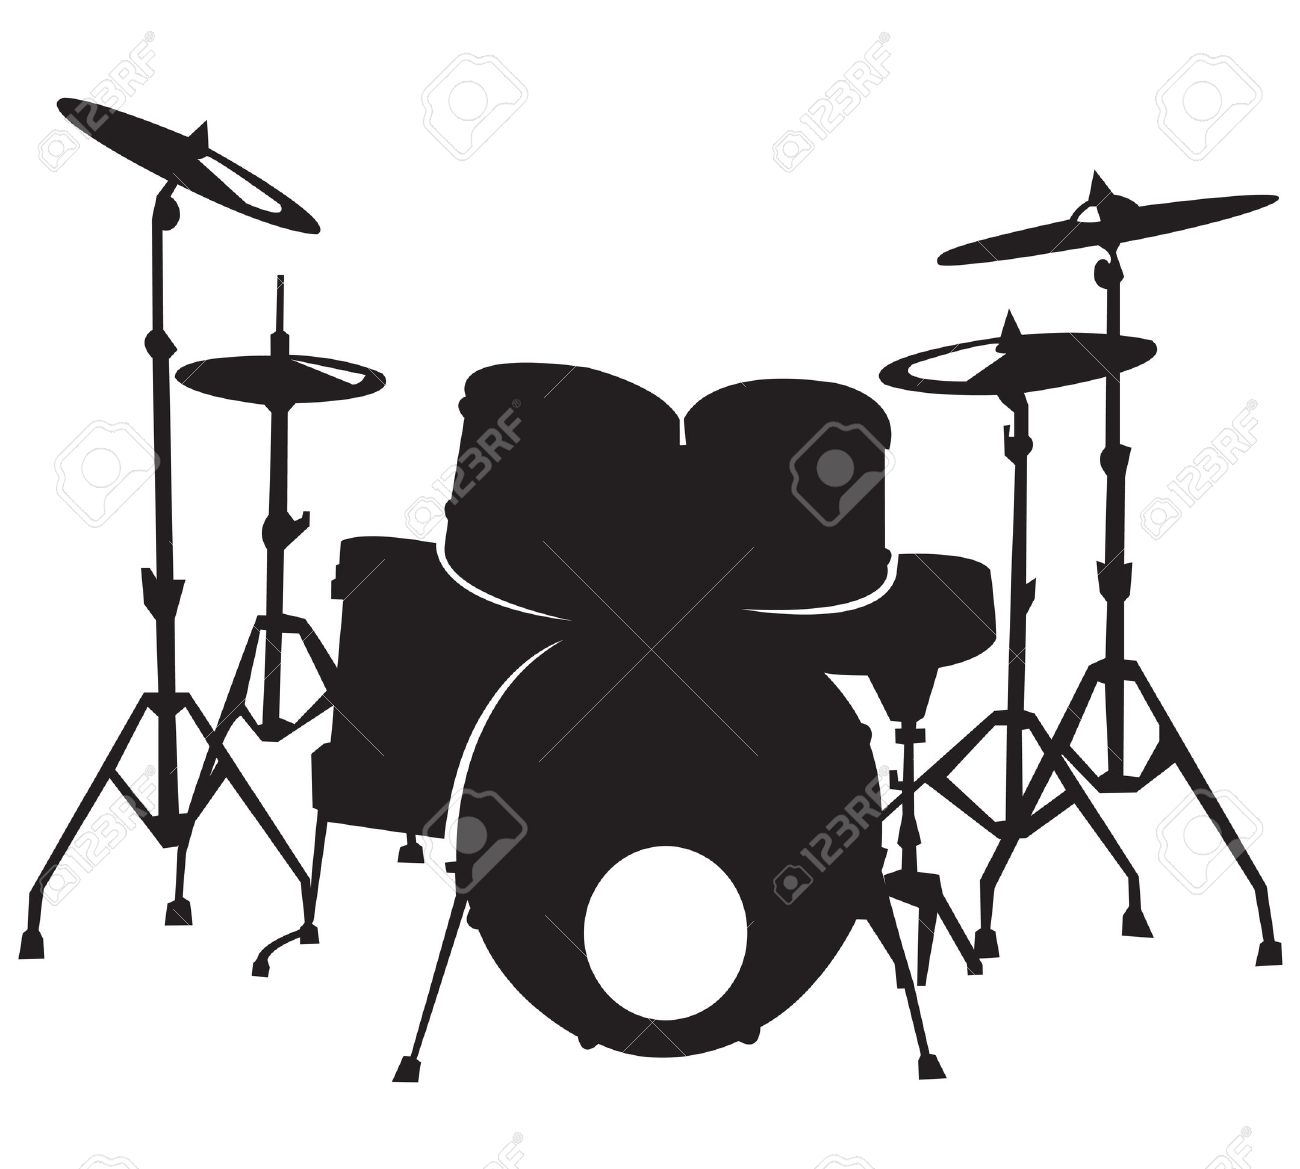 black silhuette of the drum set, isolated on white background Stock Vector - 11575623